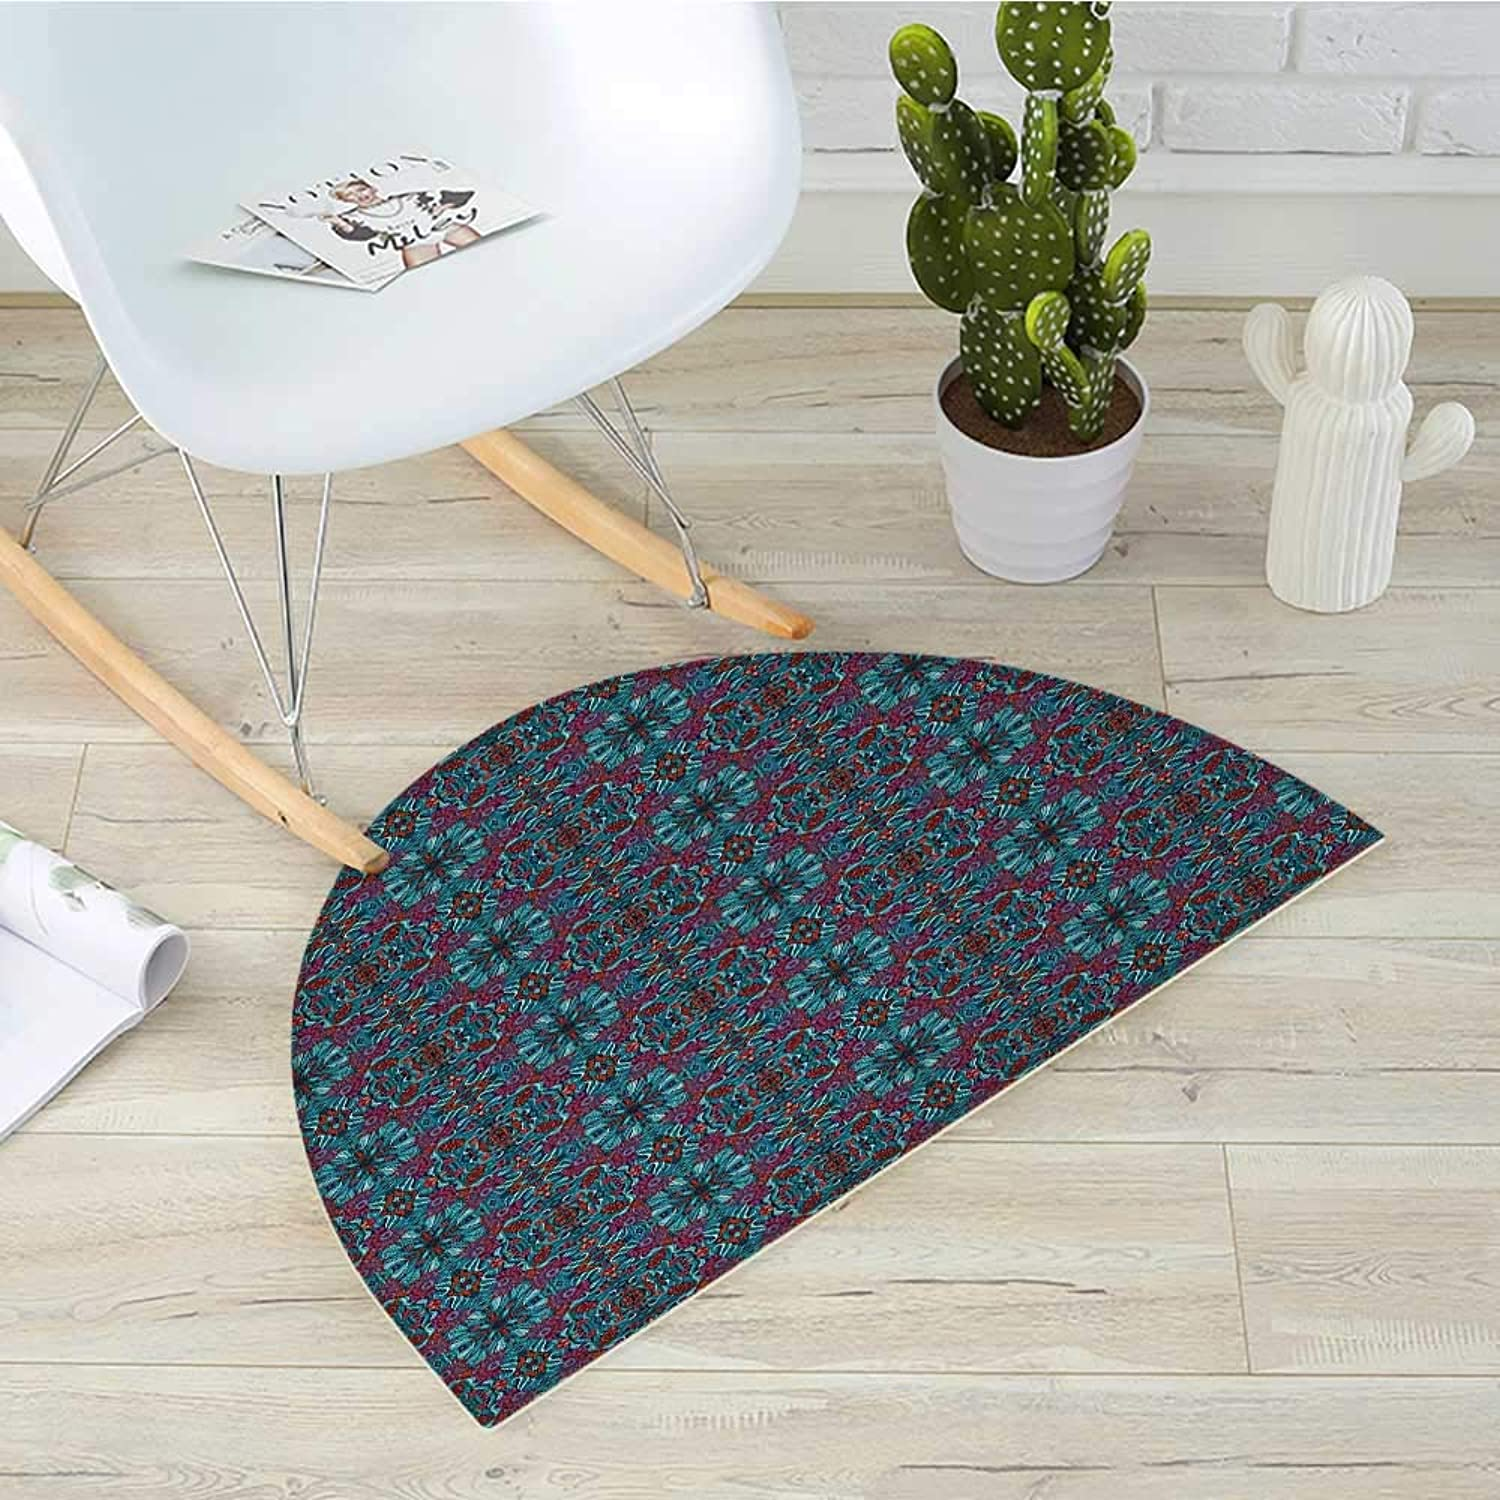 Ethnic Semicircle Doormat Abstract Ornamental Swirls and Curves Pattern with Foliage Leaves and Flowers Desgin Halfmoon doormats H 31.5  xD 47.2  Multicolor